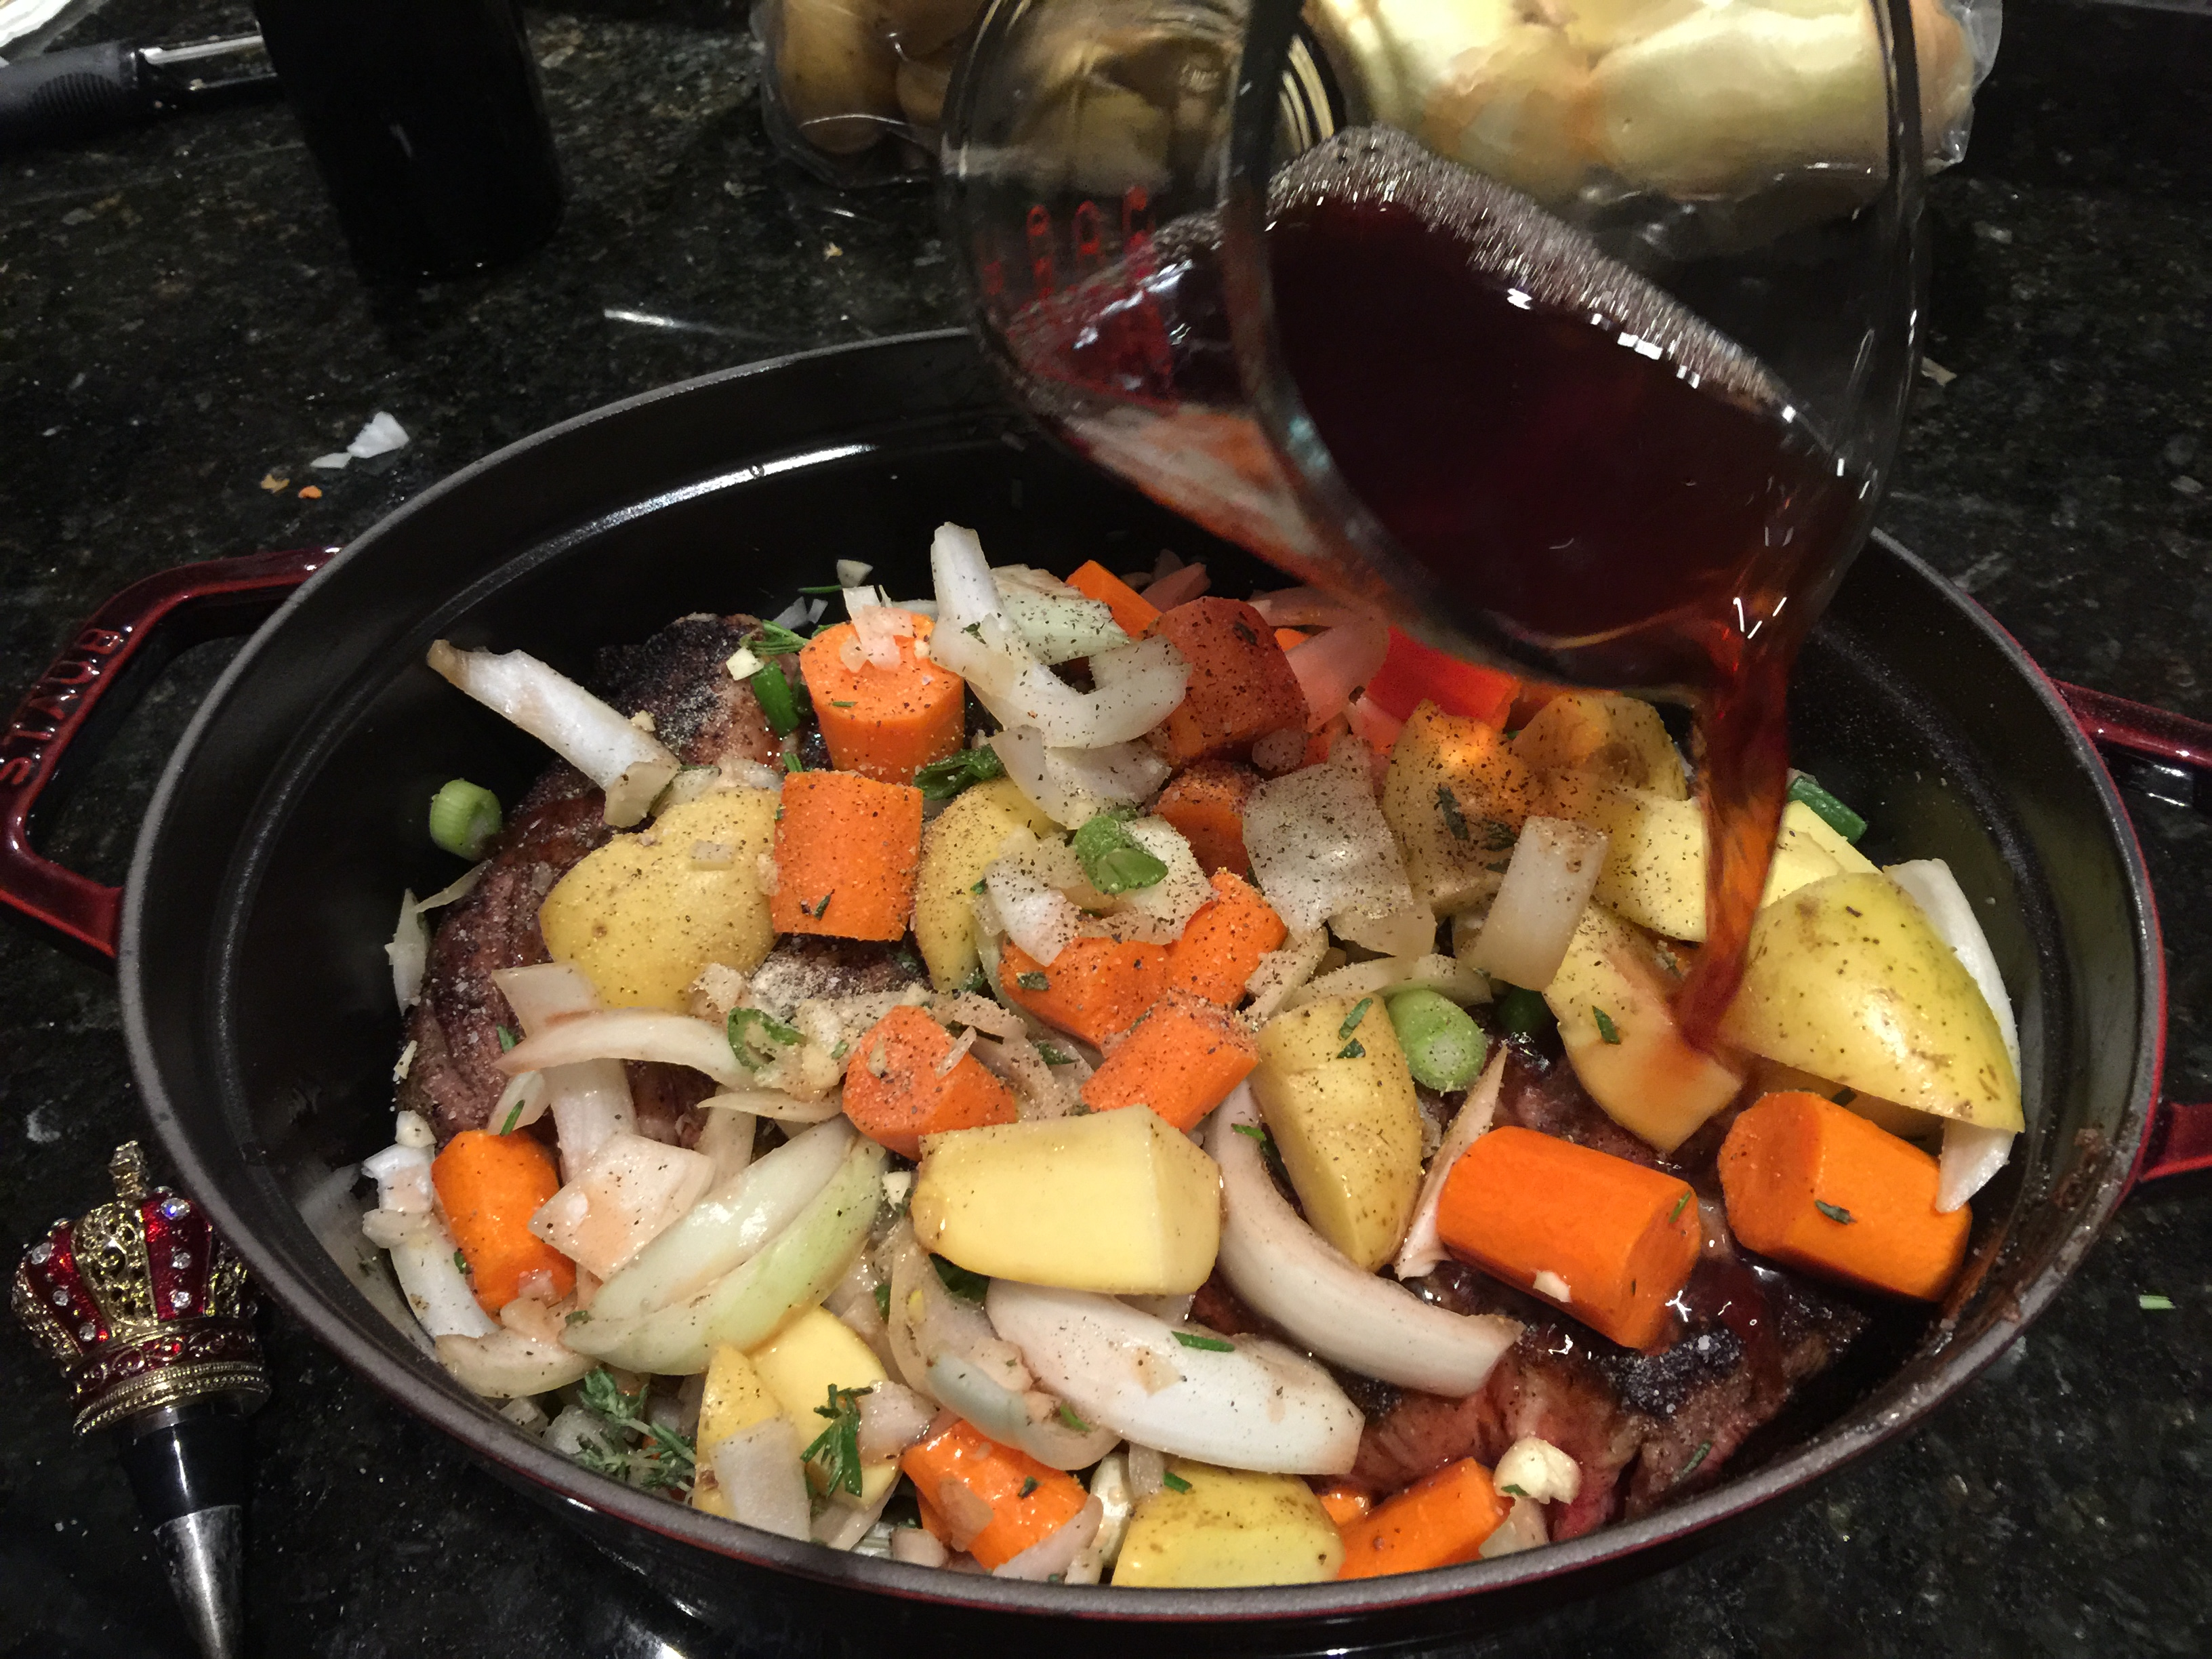 Adding Red Wine to Pot Roast